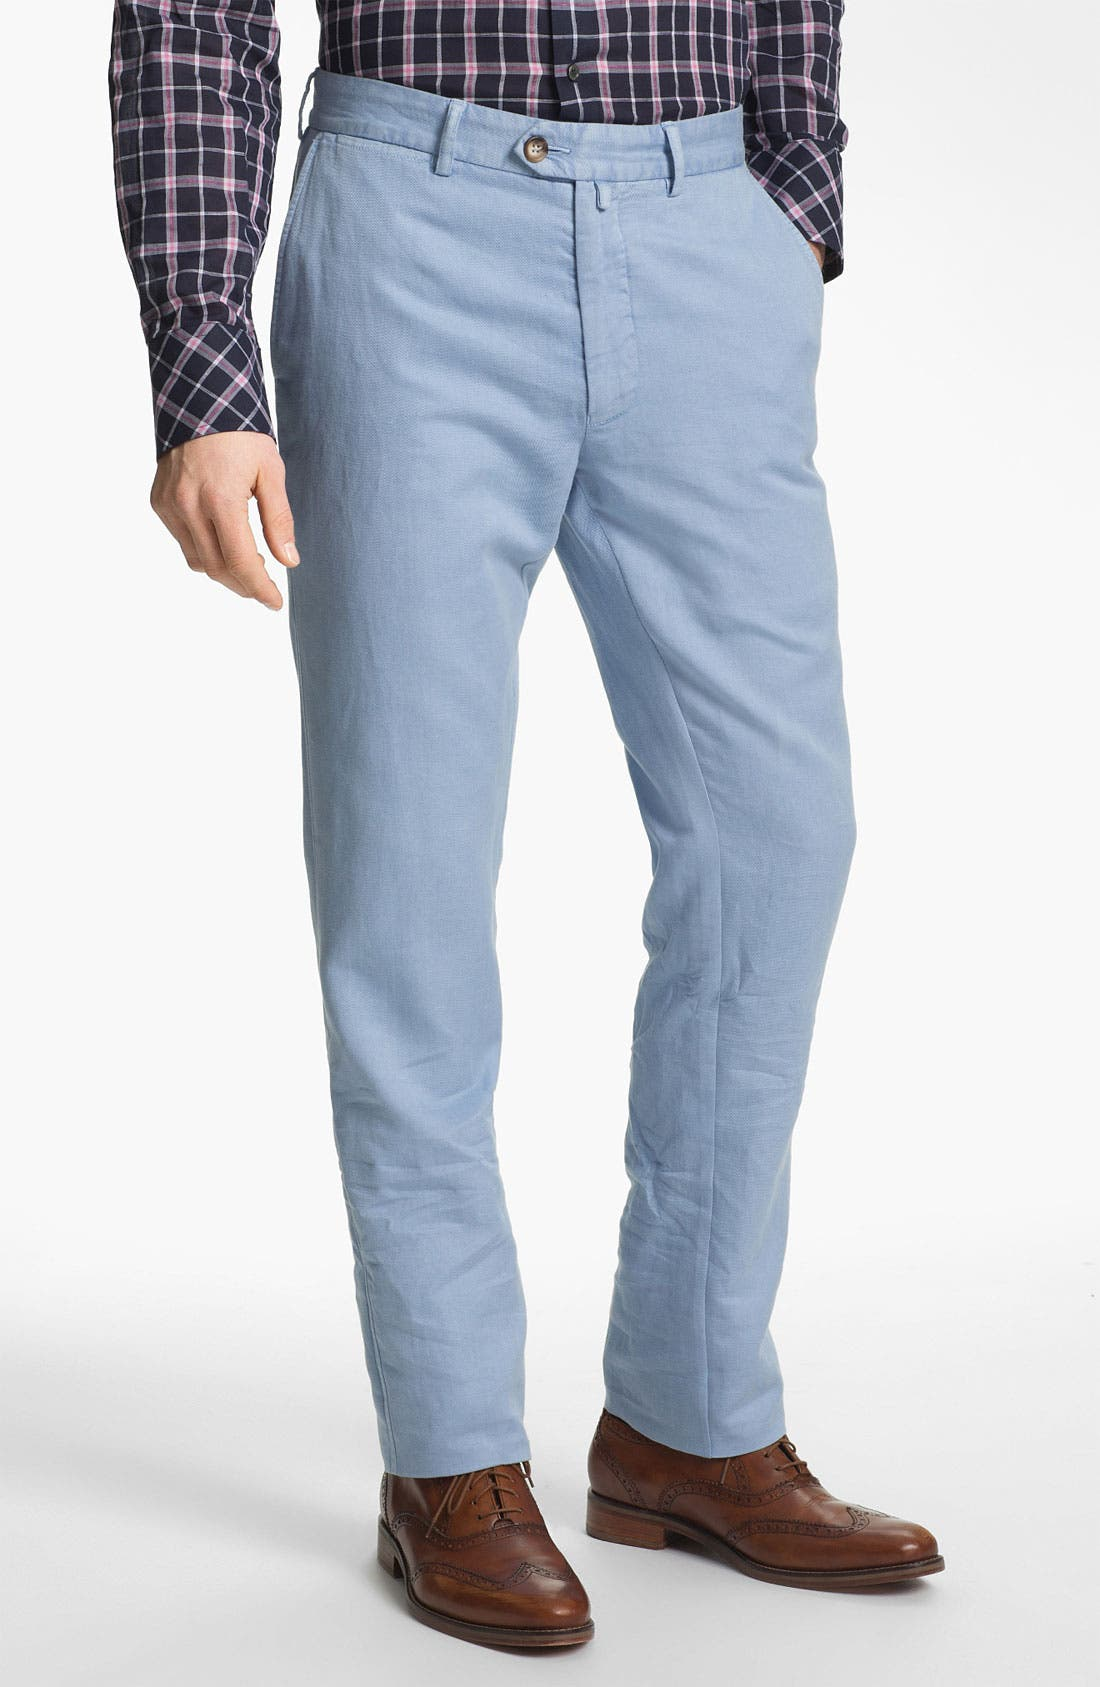 Alternate Image 1 Selected - Façonnable 'USA Senator' Flat Front Pants